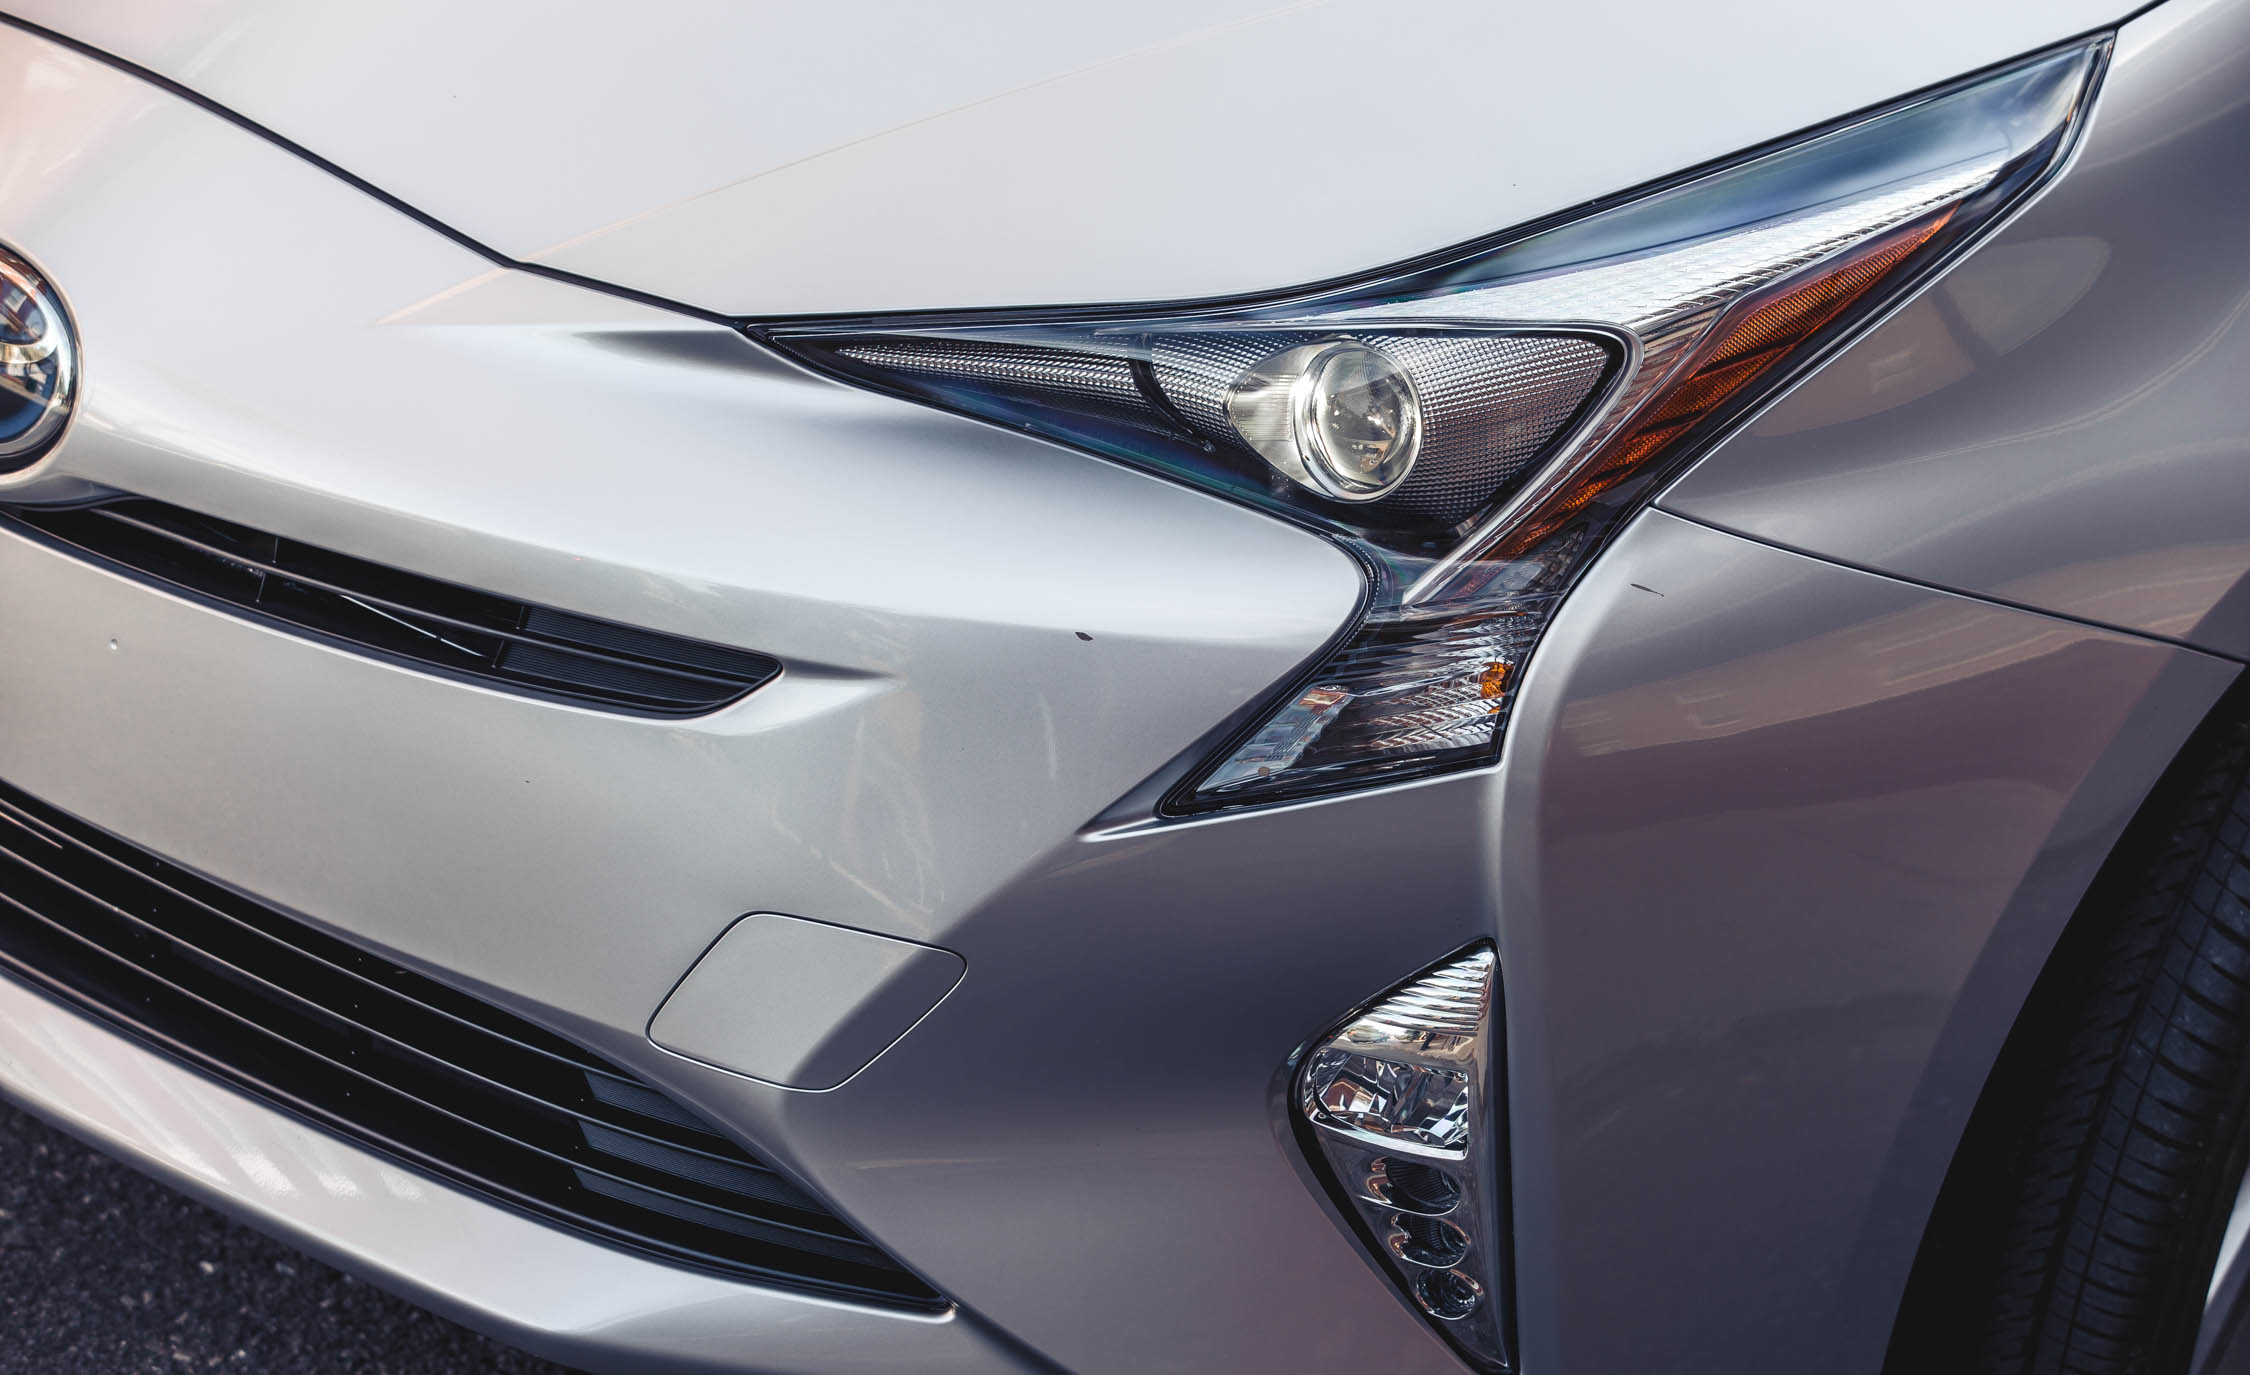 2017 Toyota Prius Exterior View Headlight (Photo 36 of 64)